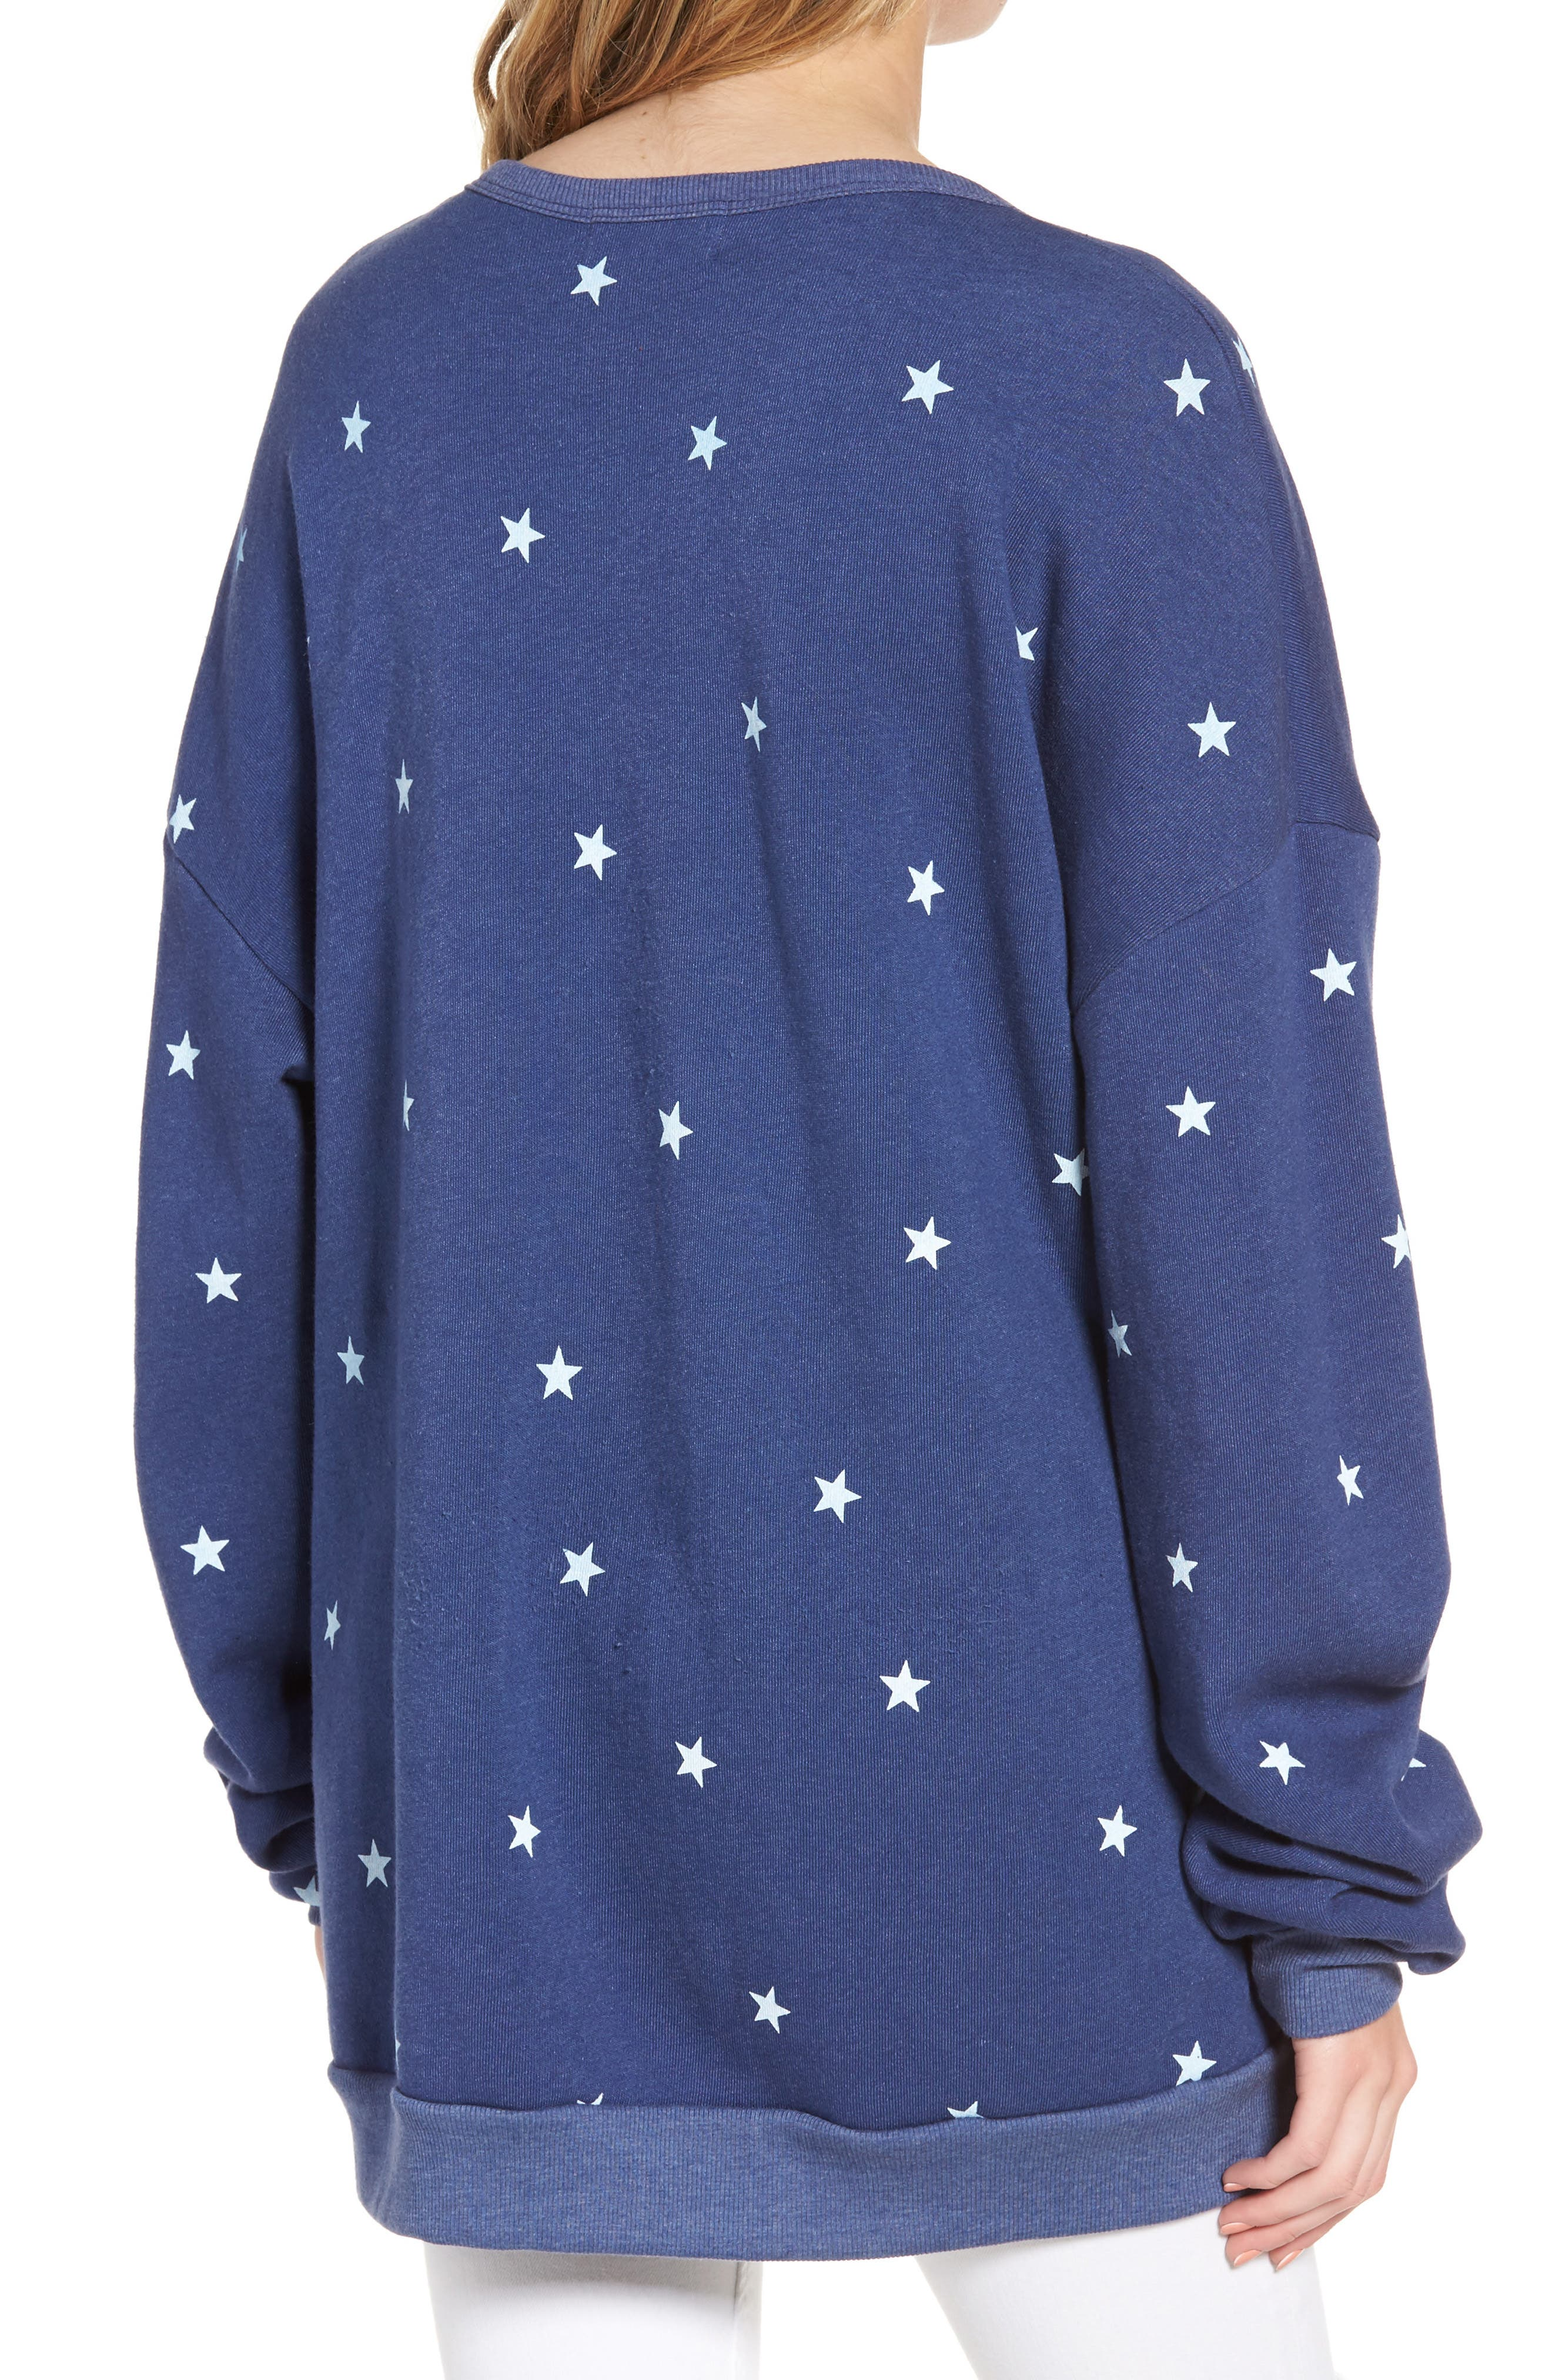 Alternate Image 2  - Wildfox Star Tunic Sweatshirt